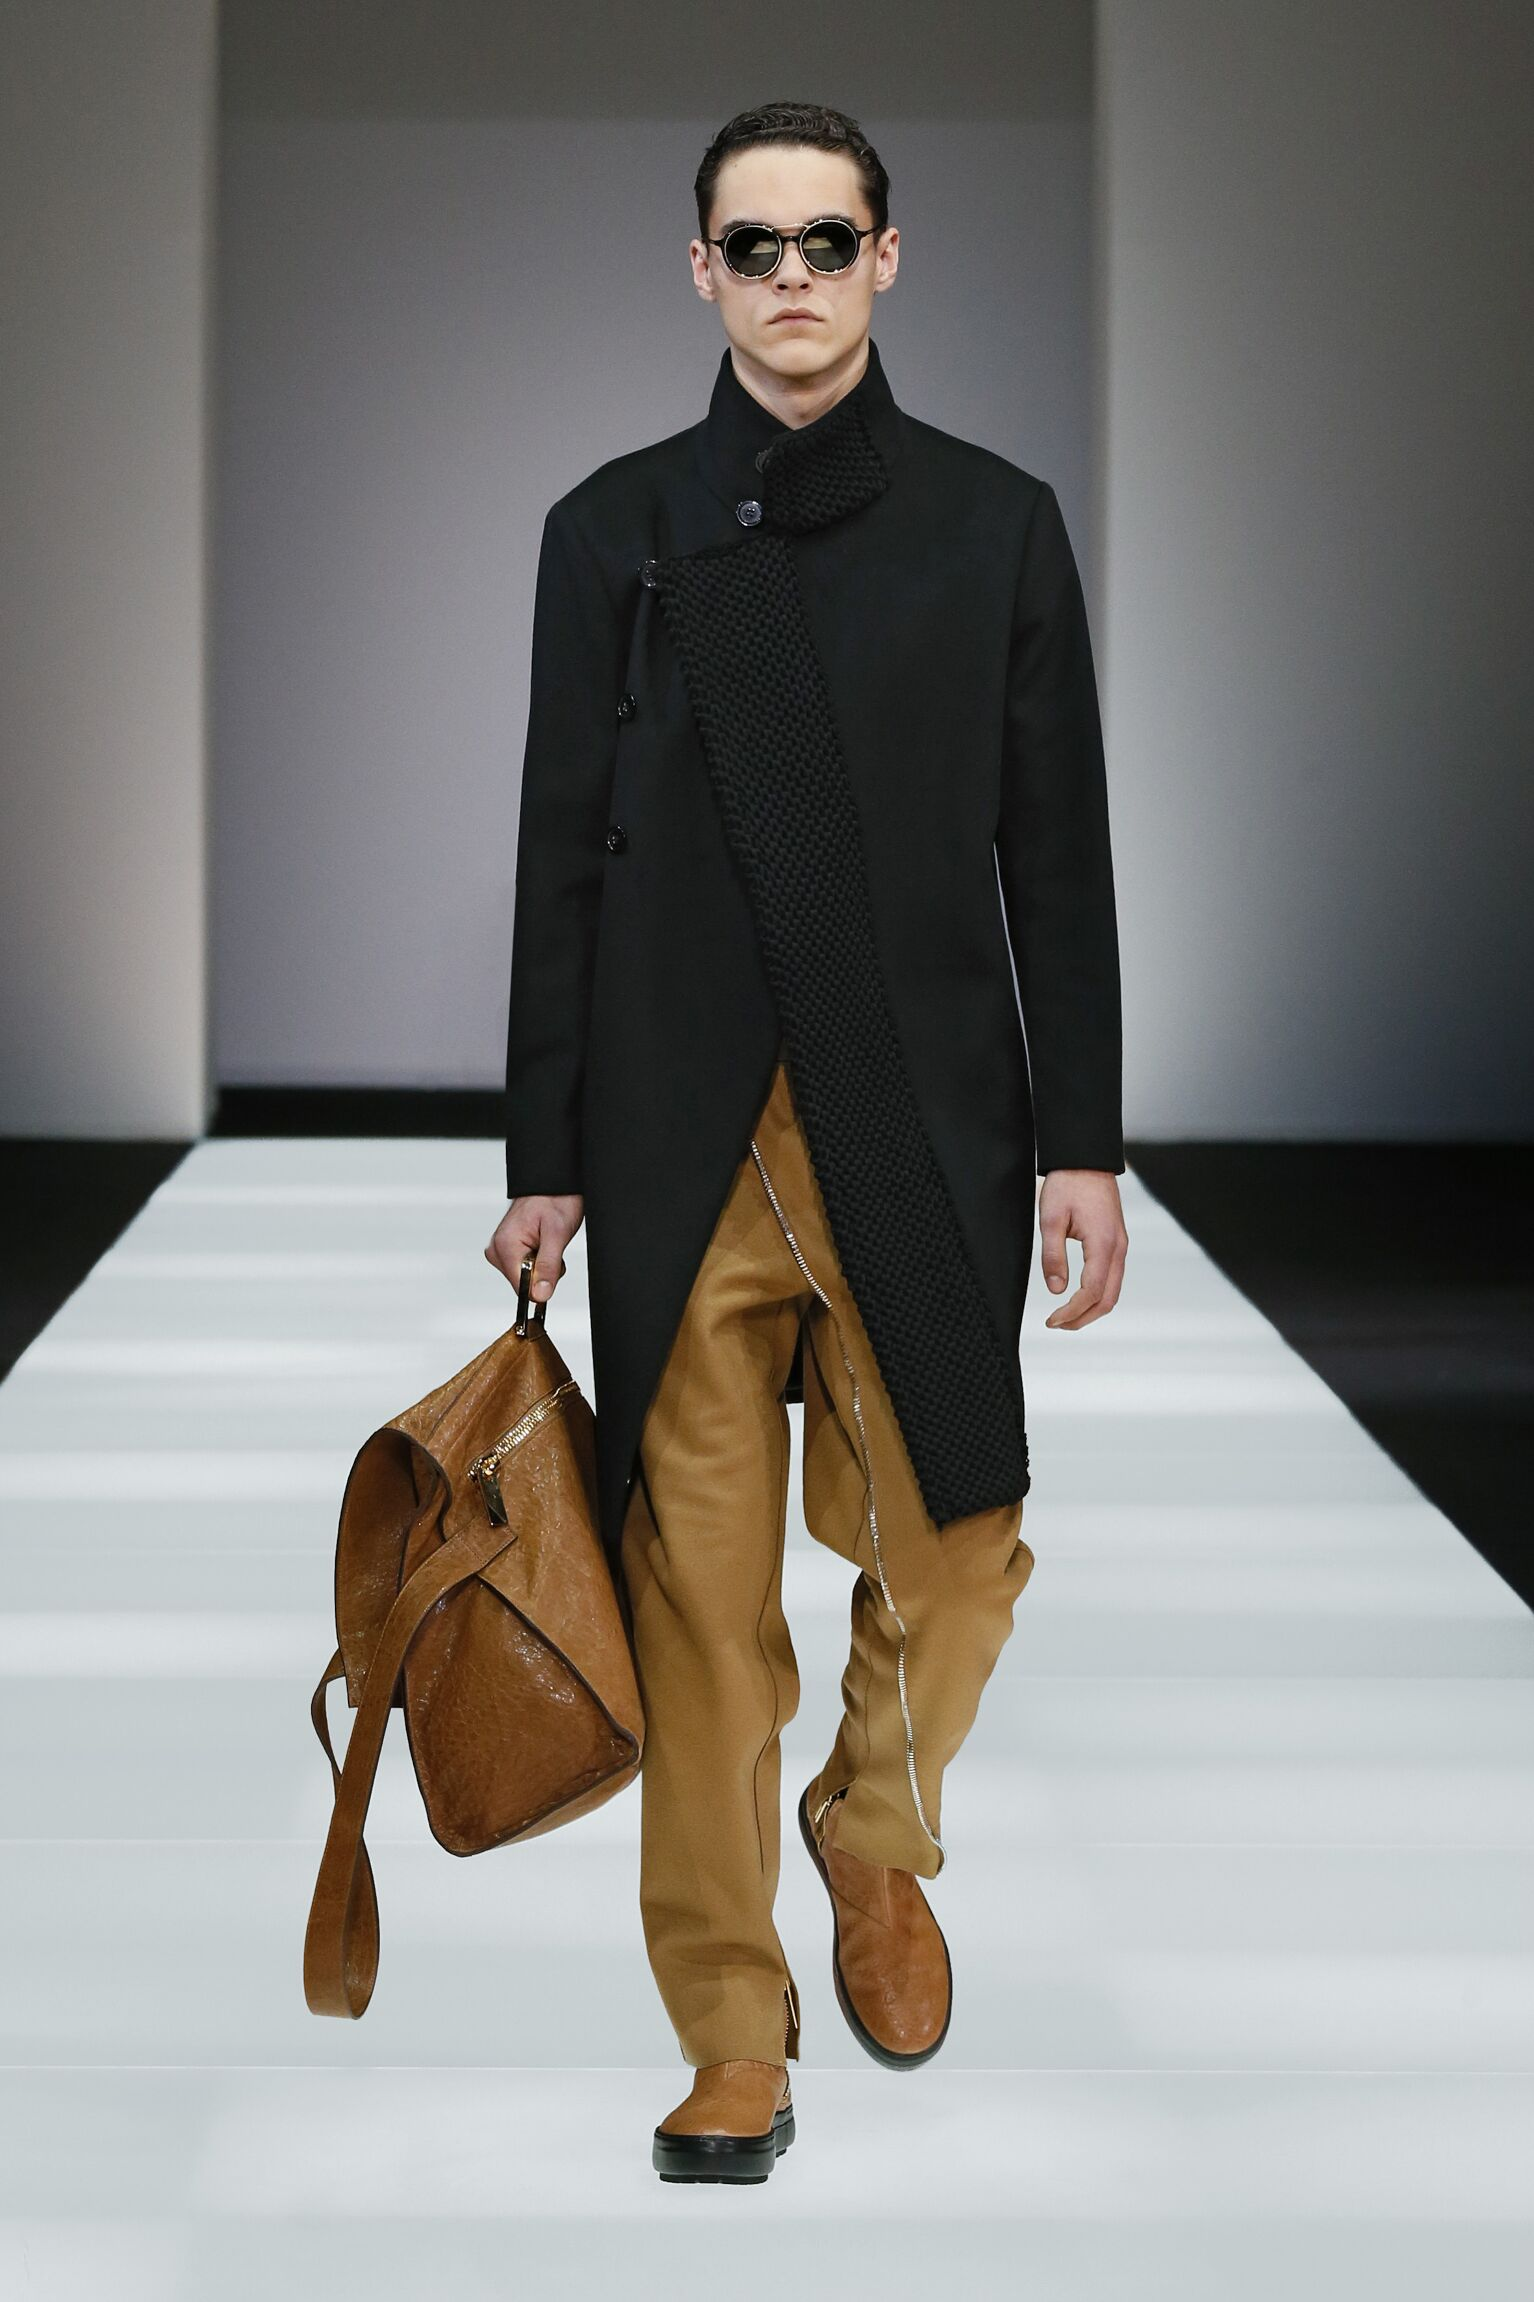 Emporio Armani Fall Winter 2015 16 Men's Collection Milan Fashion Week Fashion Show